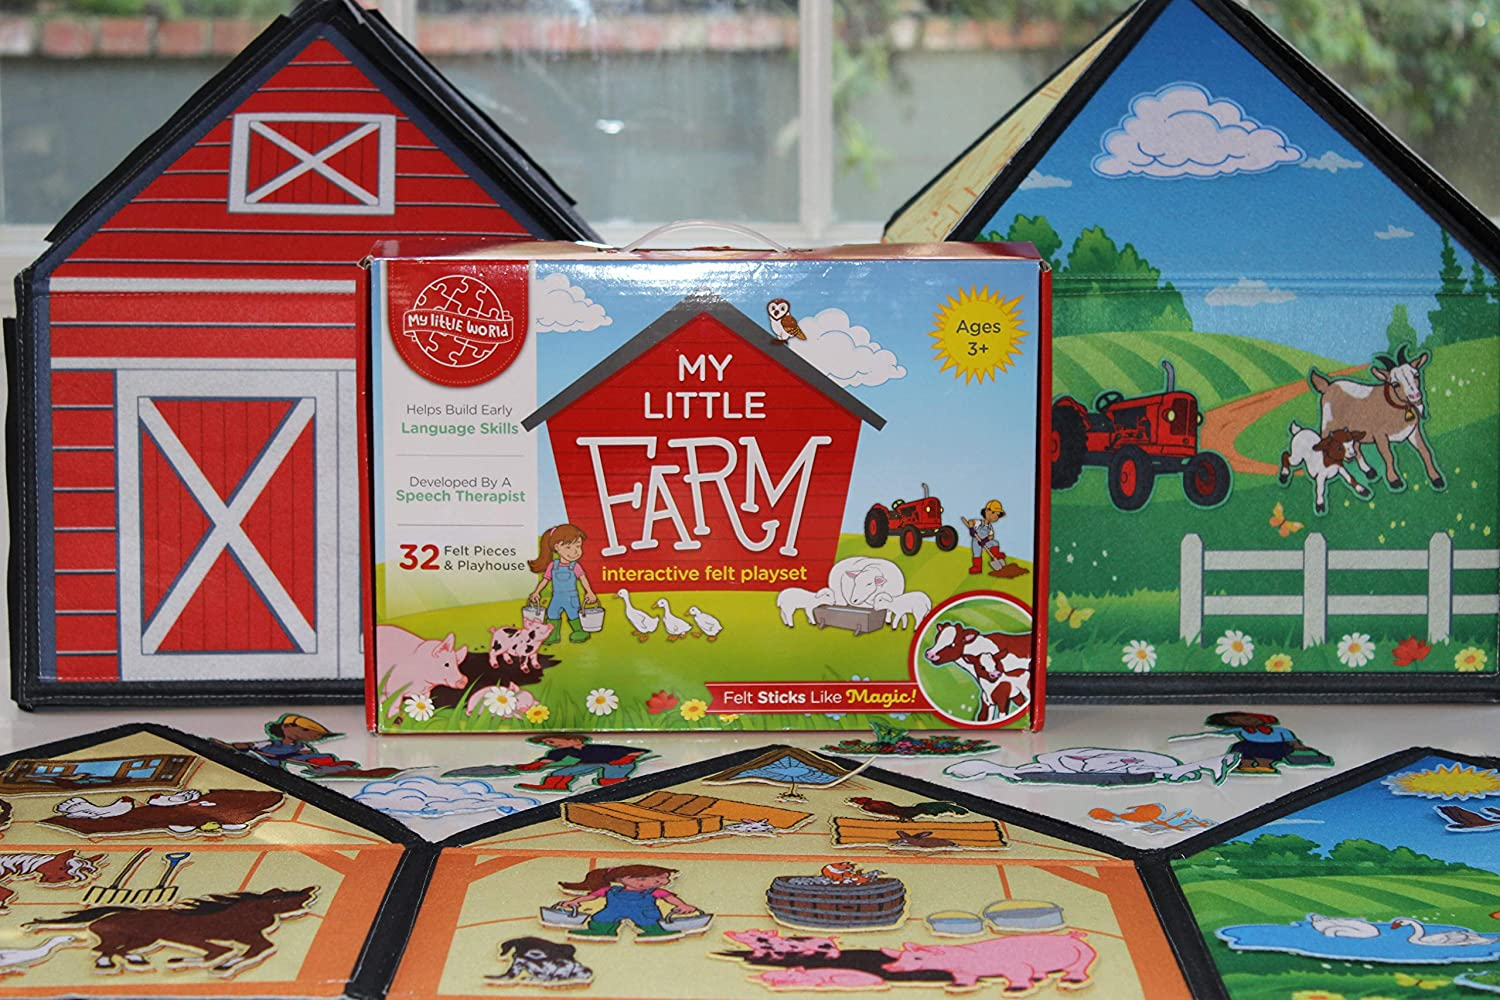 My Little Farm Interactive 3d Felt Playhouse For Early Language And Vocabulary Development 8 Colorful Rooms With 32 Matching Felt Pieces